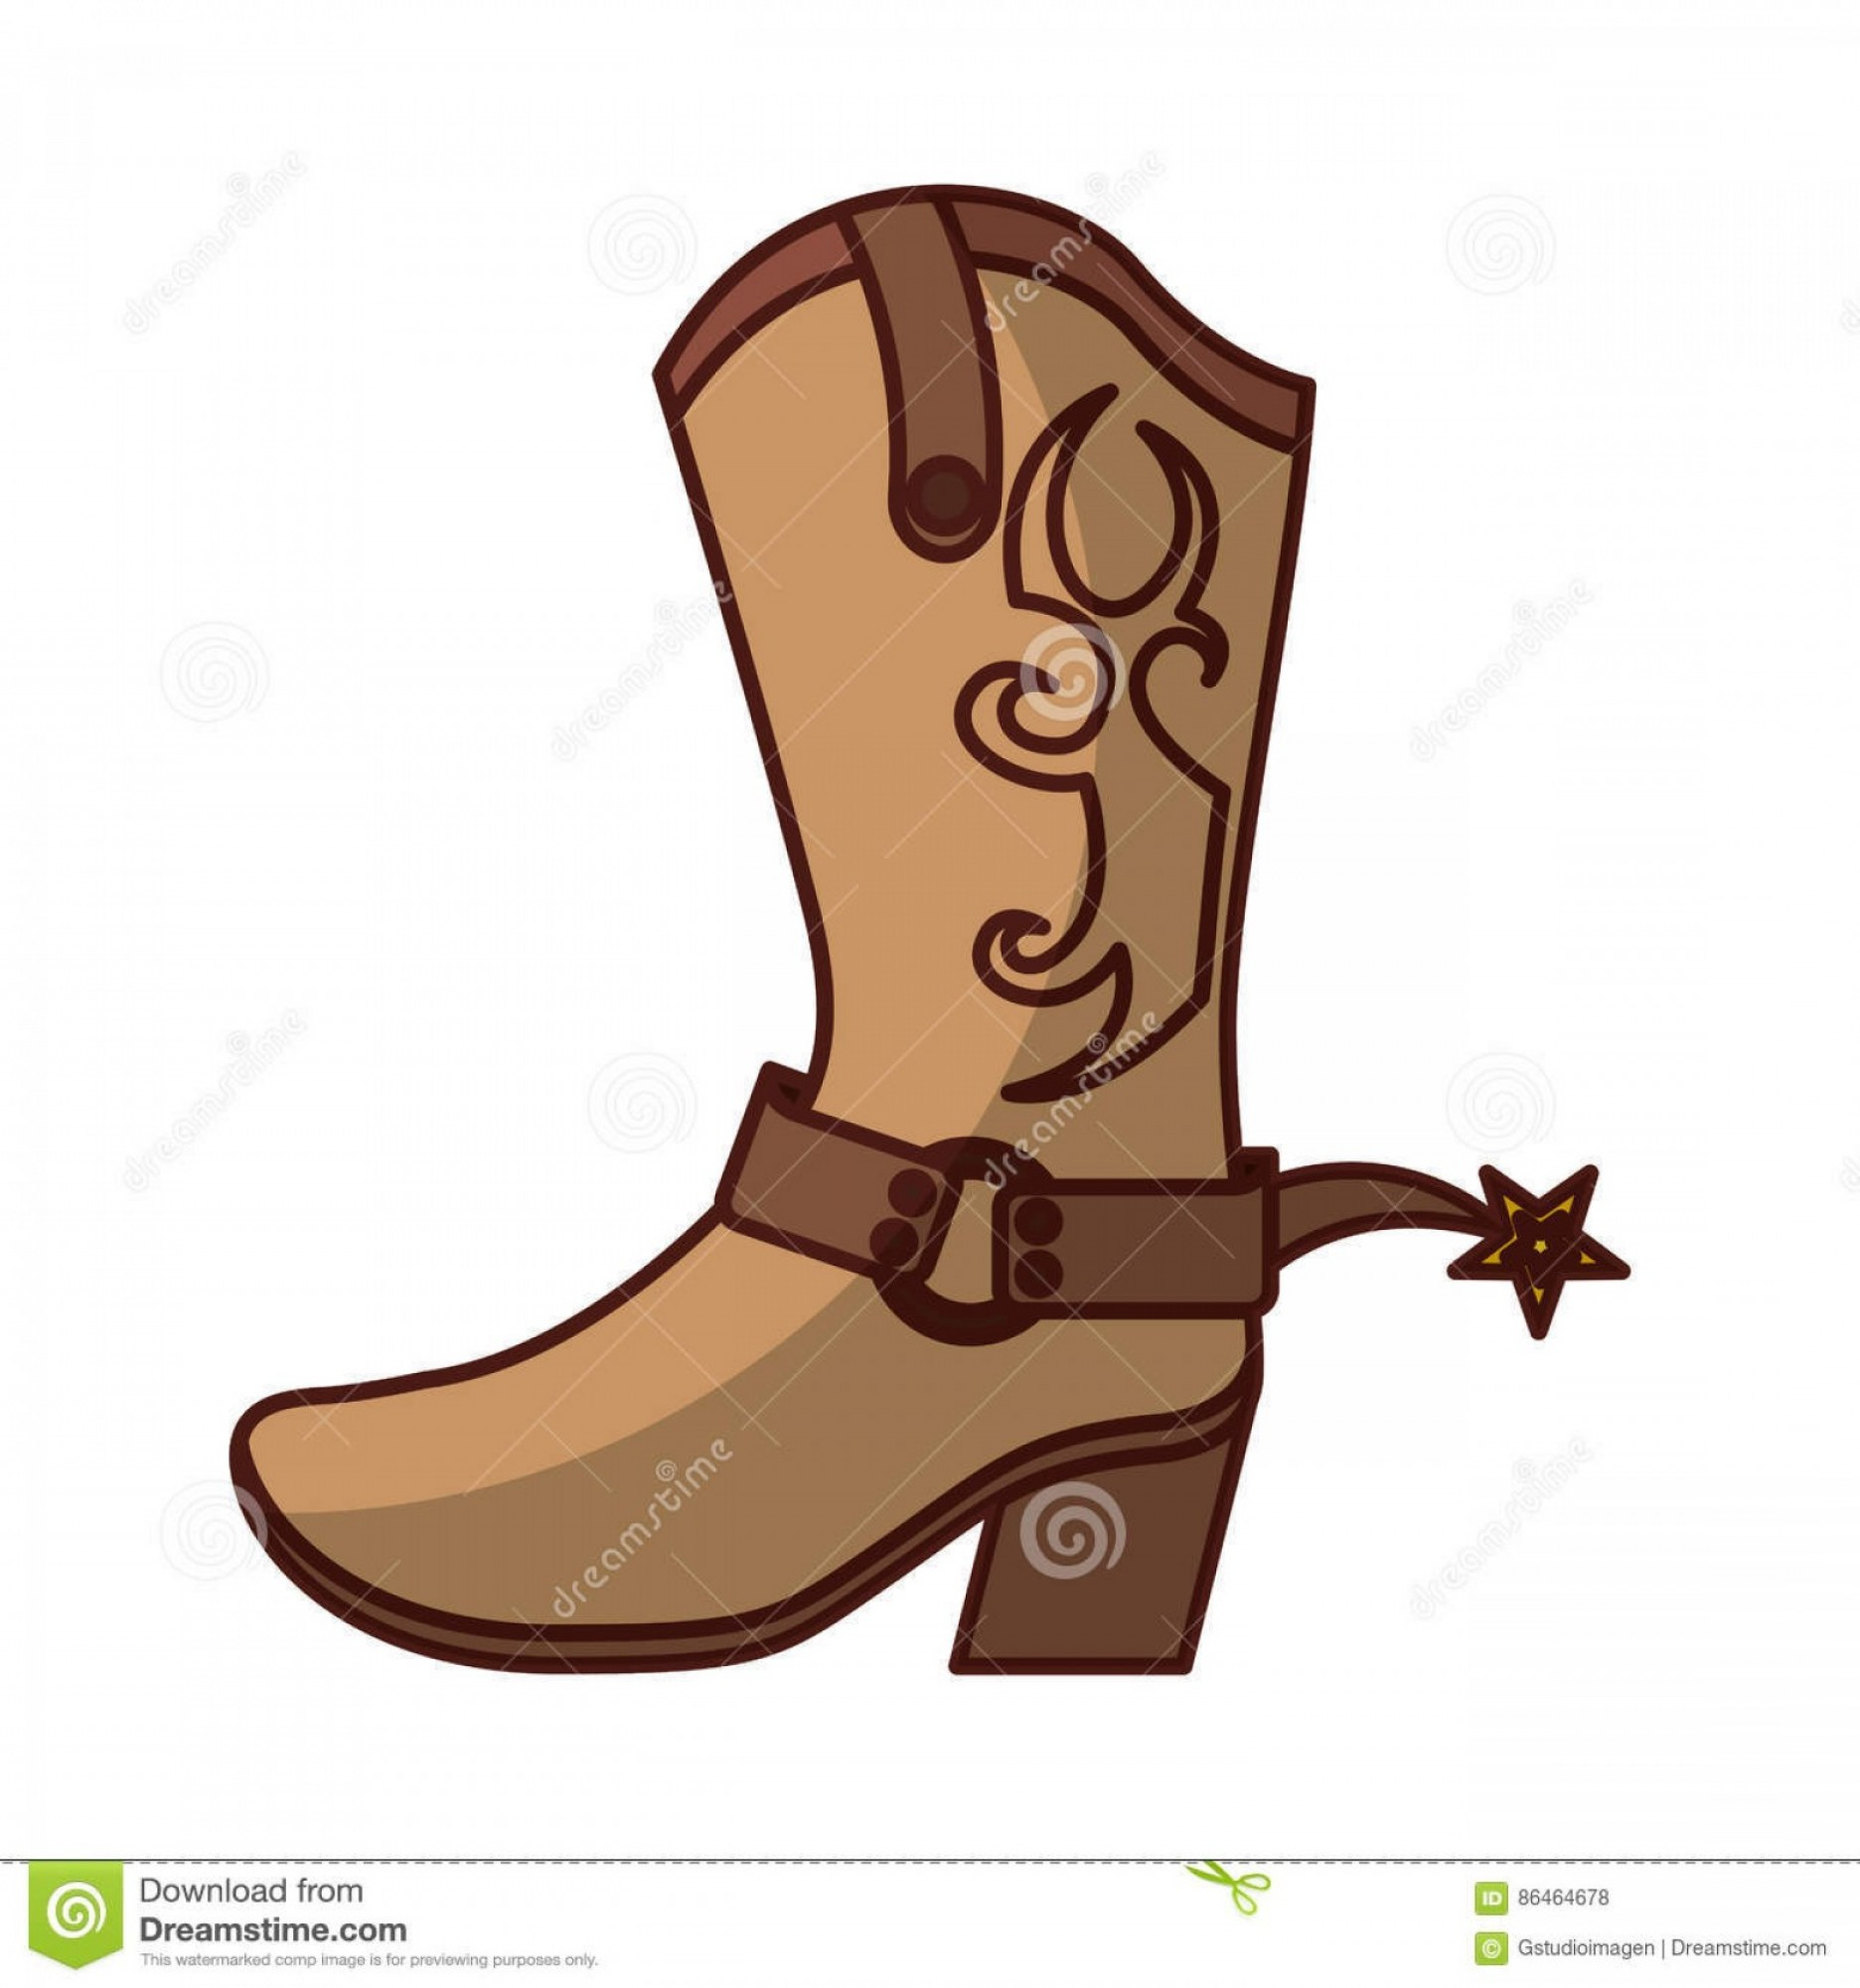 Two Cowgirl Boots Vector: Stock Illustration Cowboy Boot Shoe Icon Vector Illustration Design Image